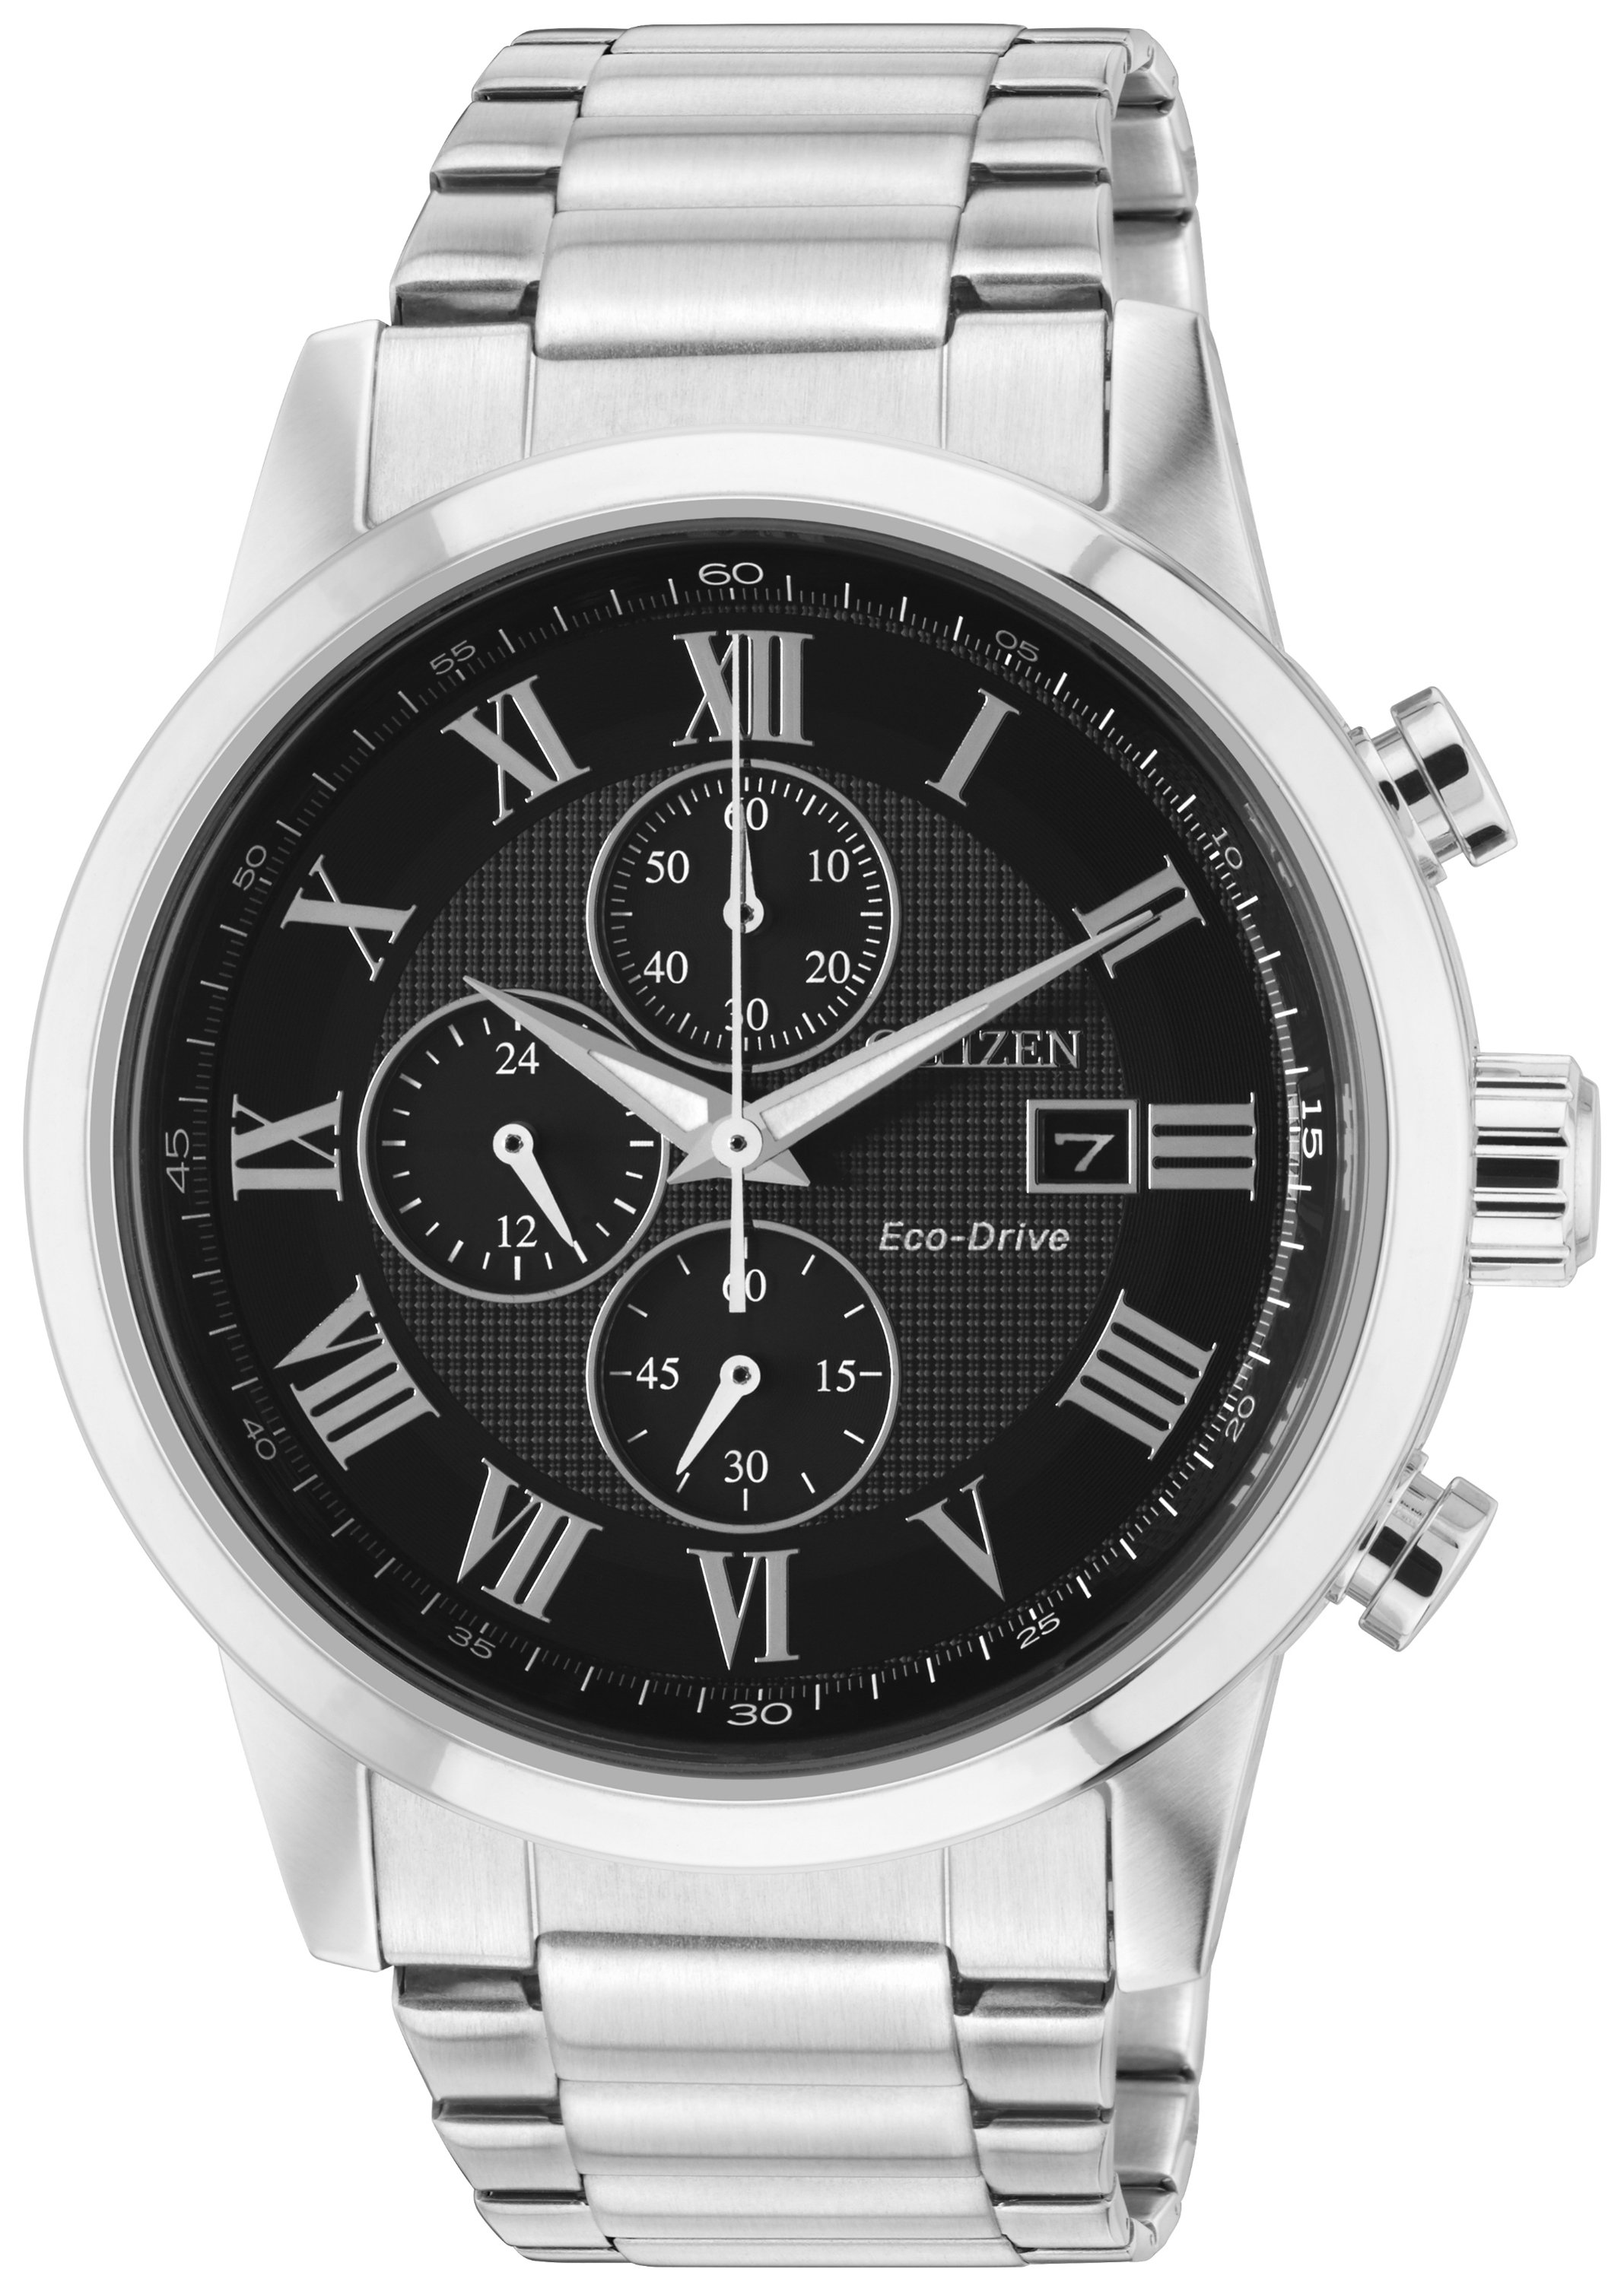 Citizen Black Dial Eco-Drive Men's Stainless Steel Chronograph Watch